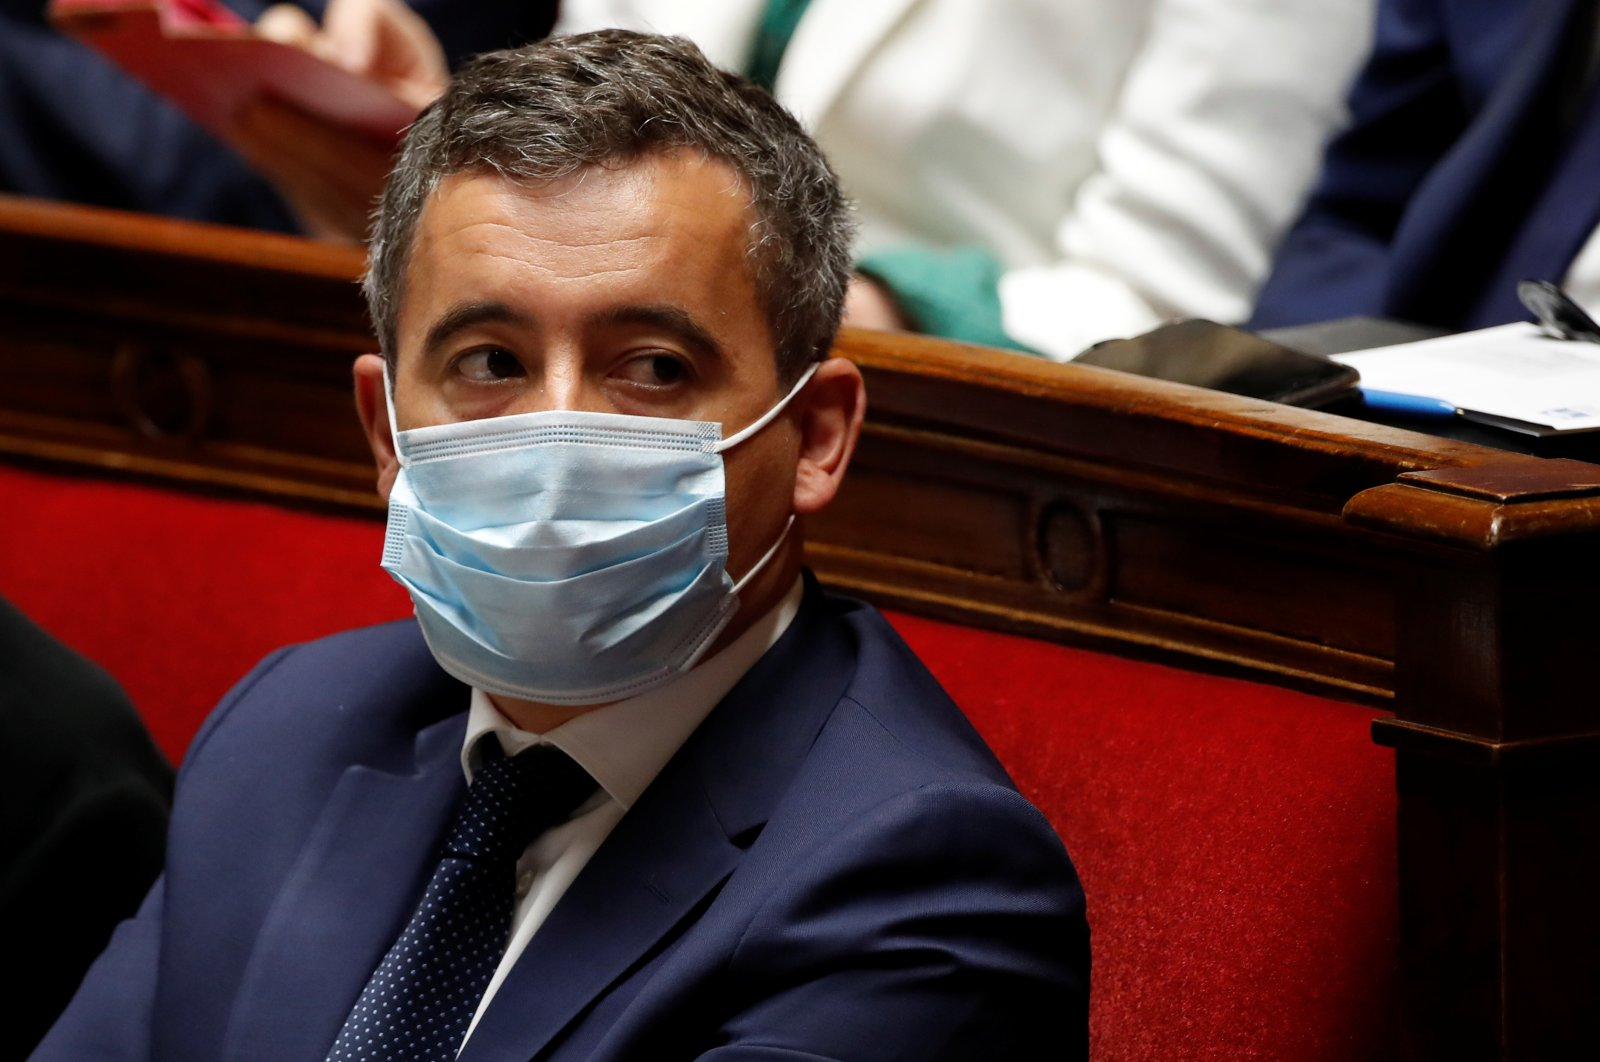 French Interior Minister Gerald Darmanin, wearing a protective face mask, attends the questions to the government session at the National Assembly in Paris, France, July 8, 2020. (Reuters Photo)